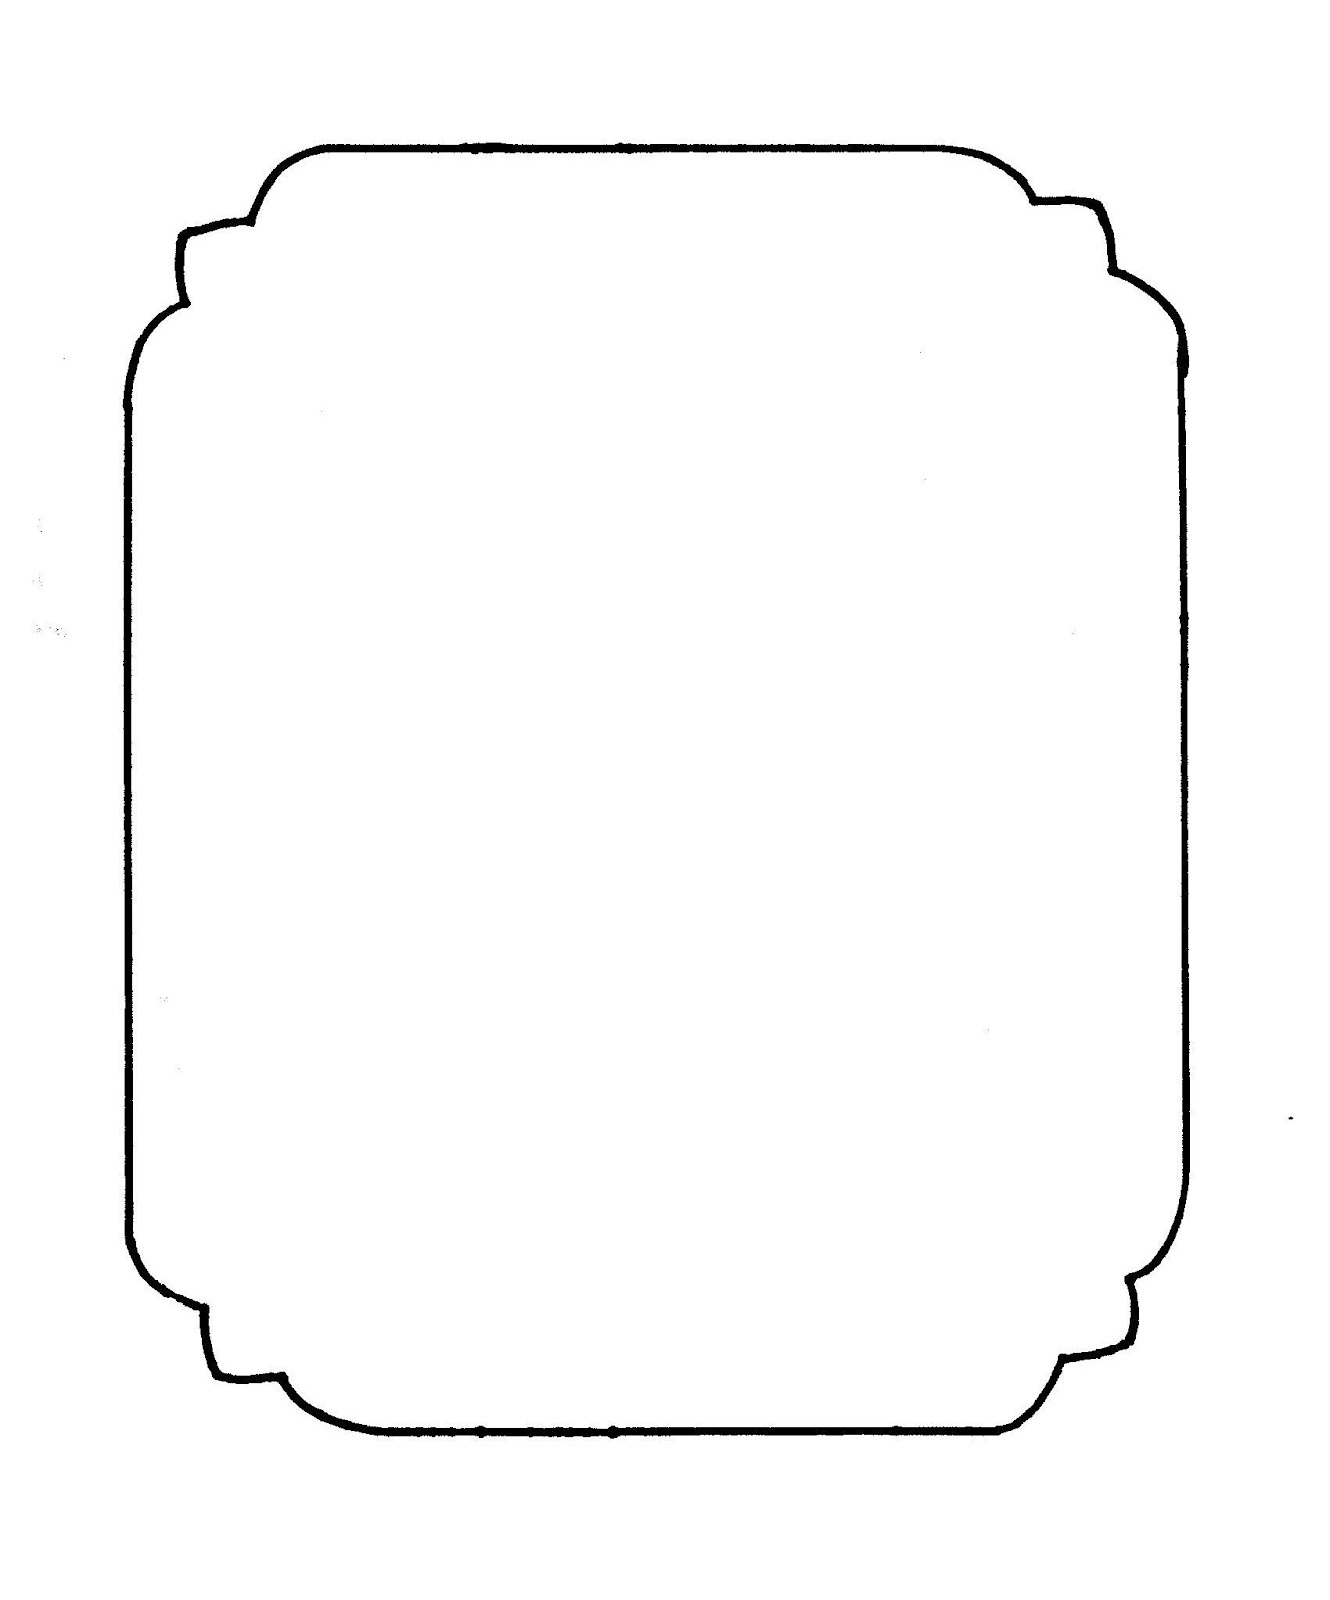 Tactueux image with printable frame template